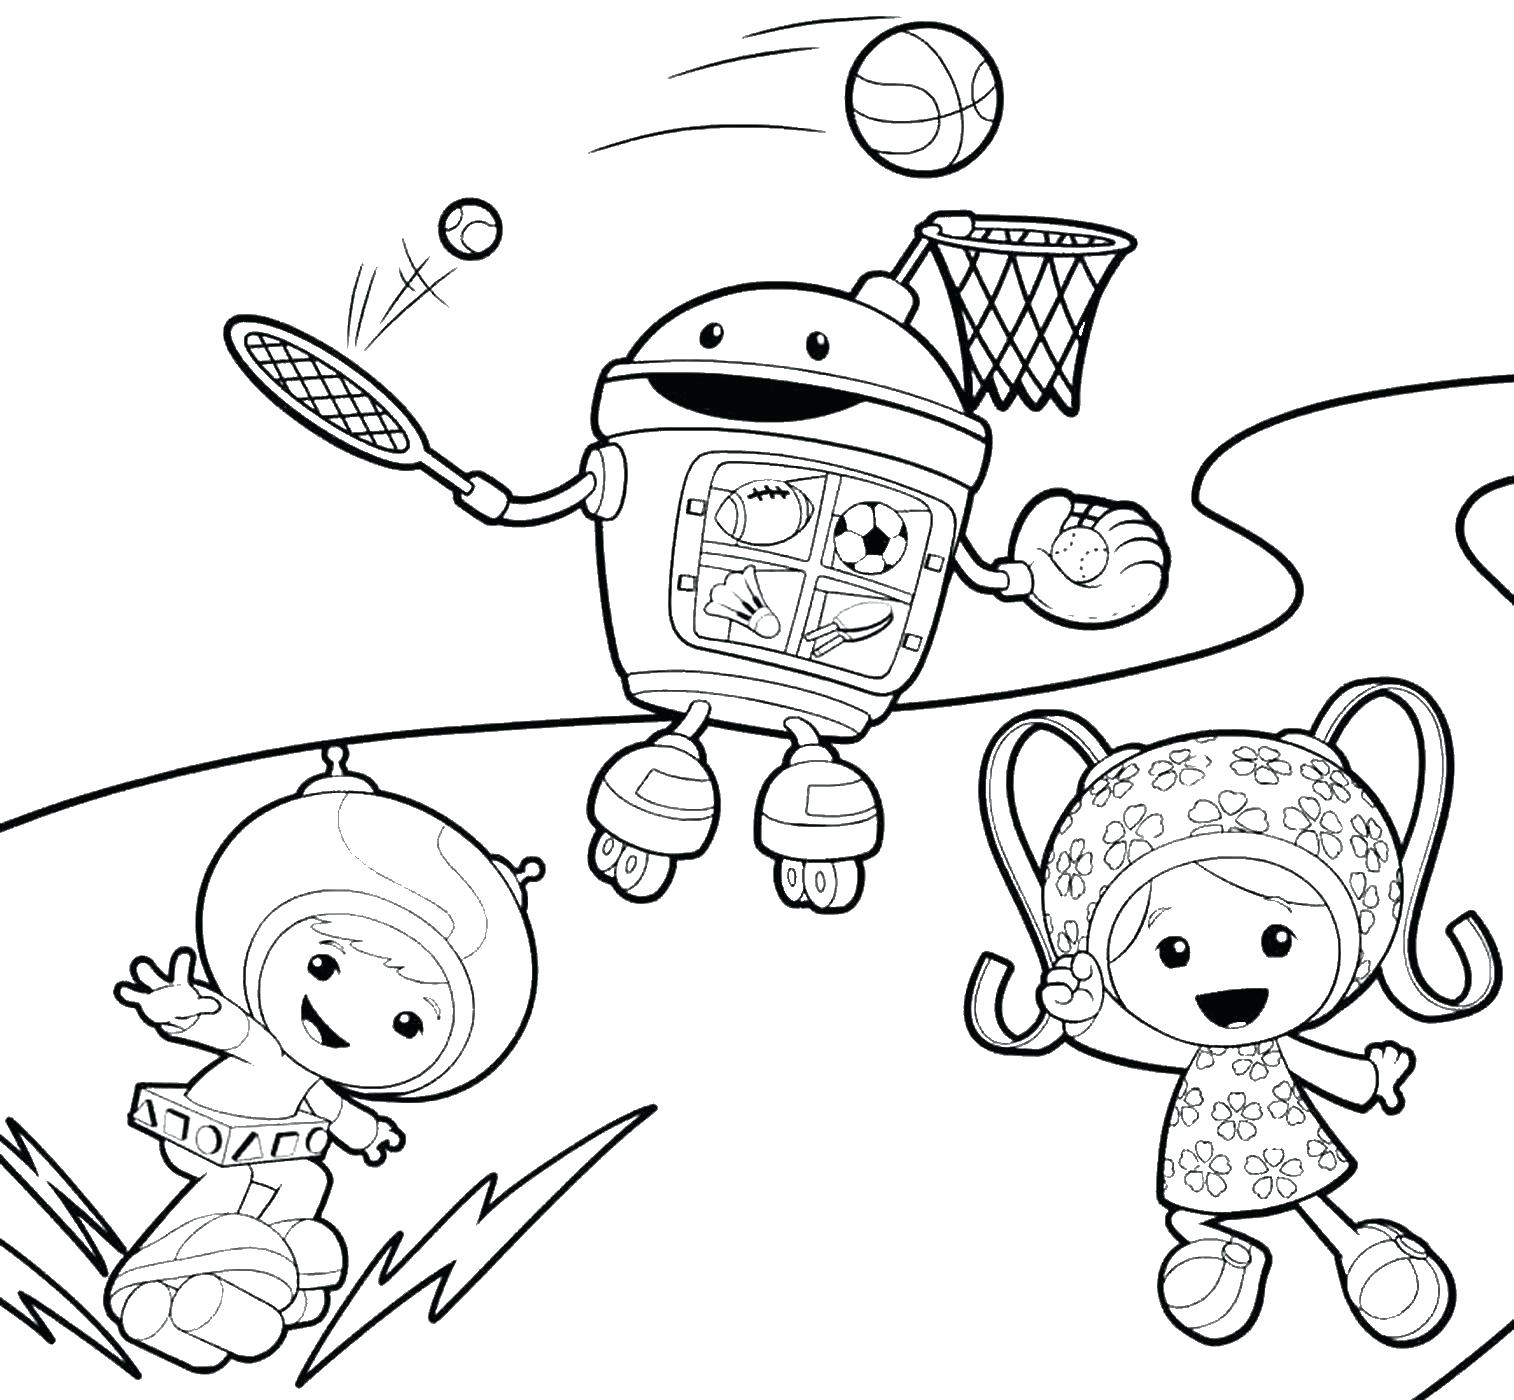 Nickelodeon Halloween Coloring Pages At Getcolorings